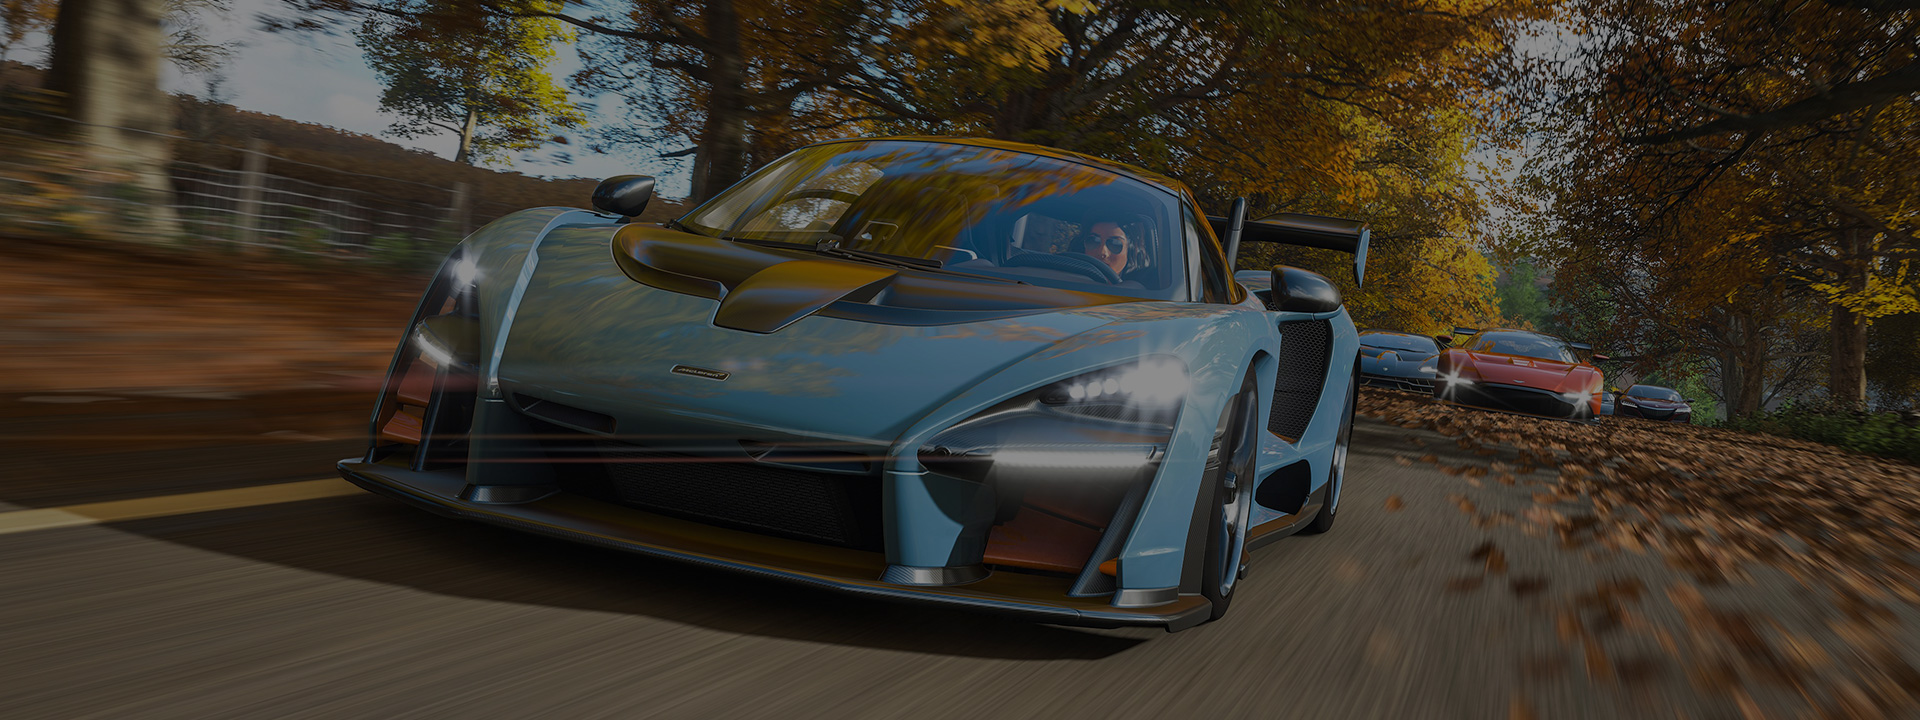 Image from Forza